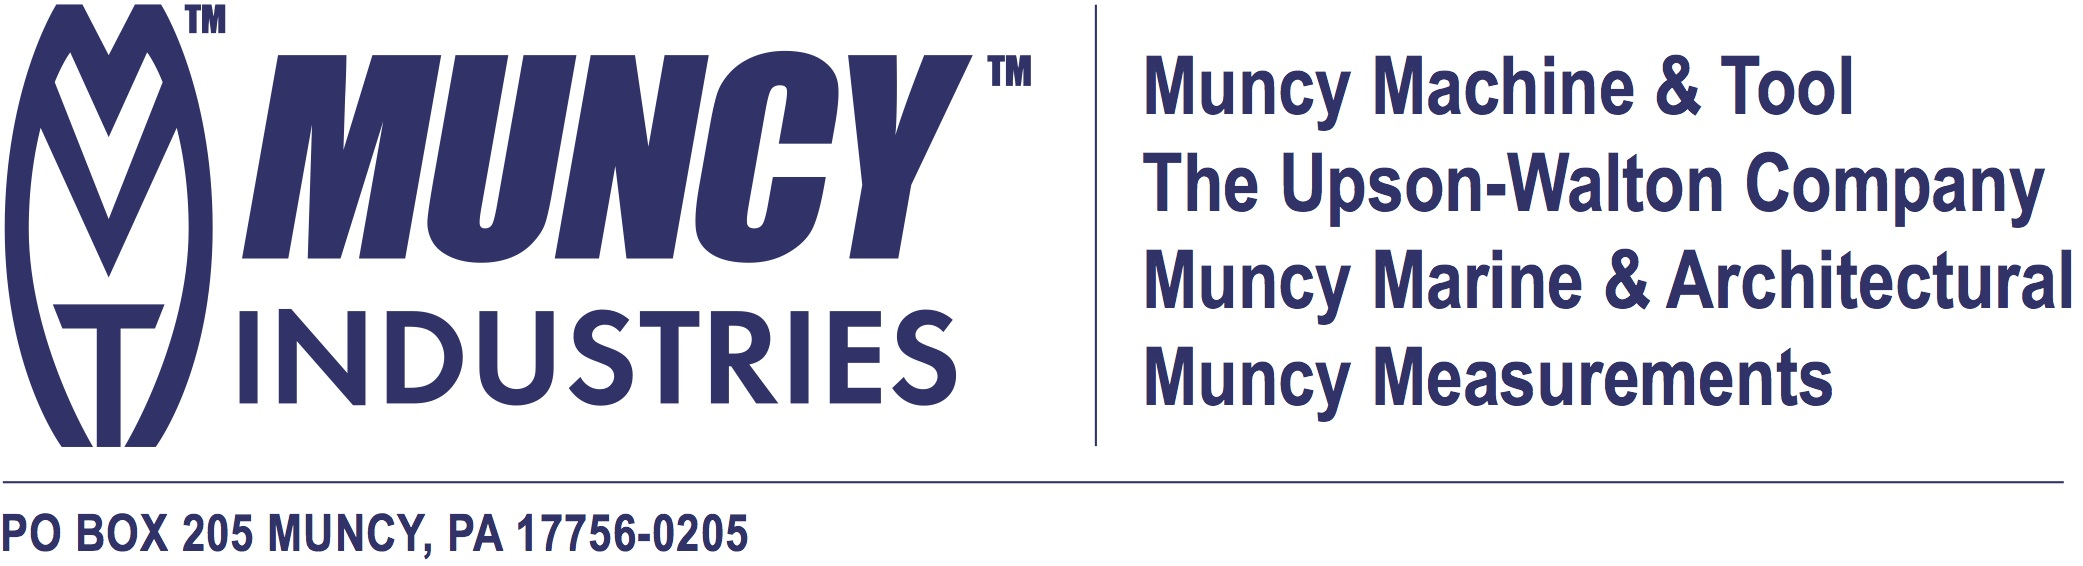 muncy dating The first quarter 2018 dividend represented the 330 th consecutive dividend payout dating back to 1935 muncy bank financial inc has increased its.